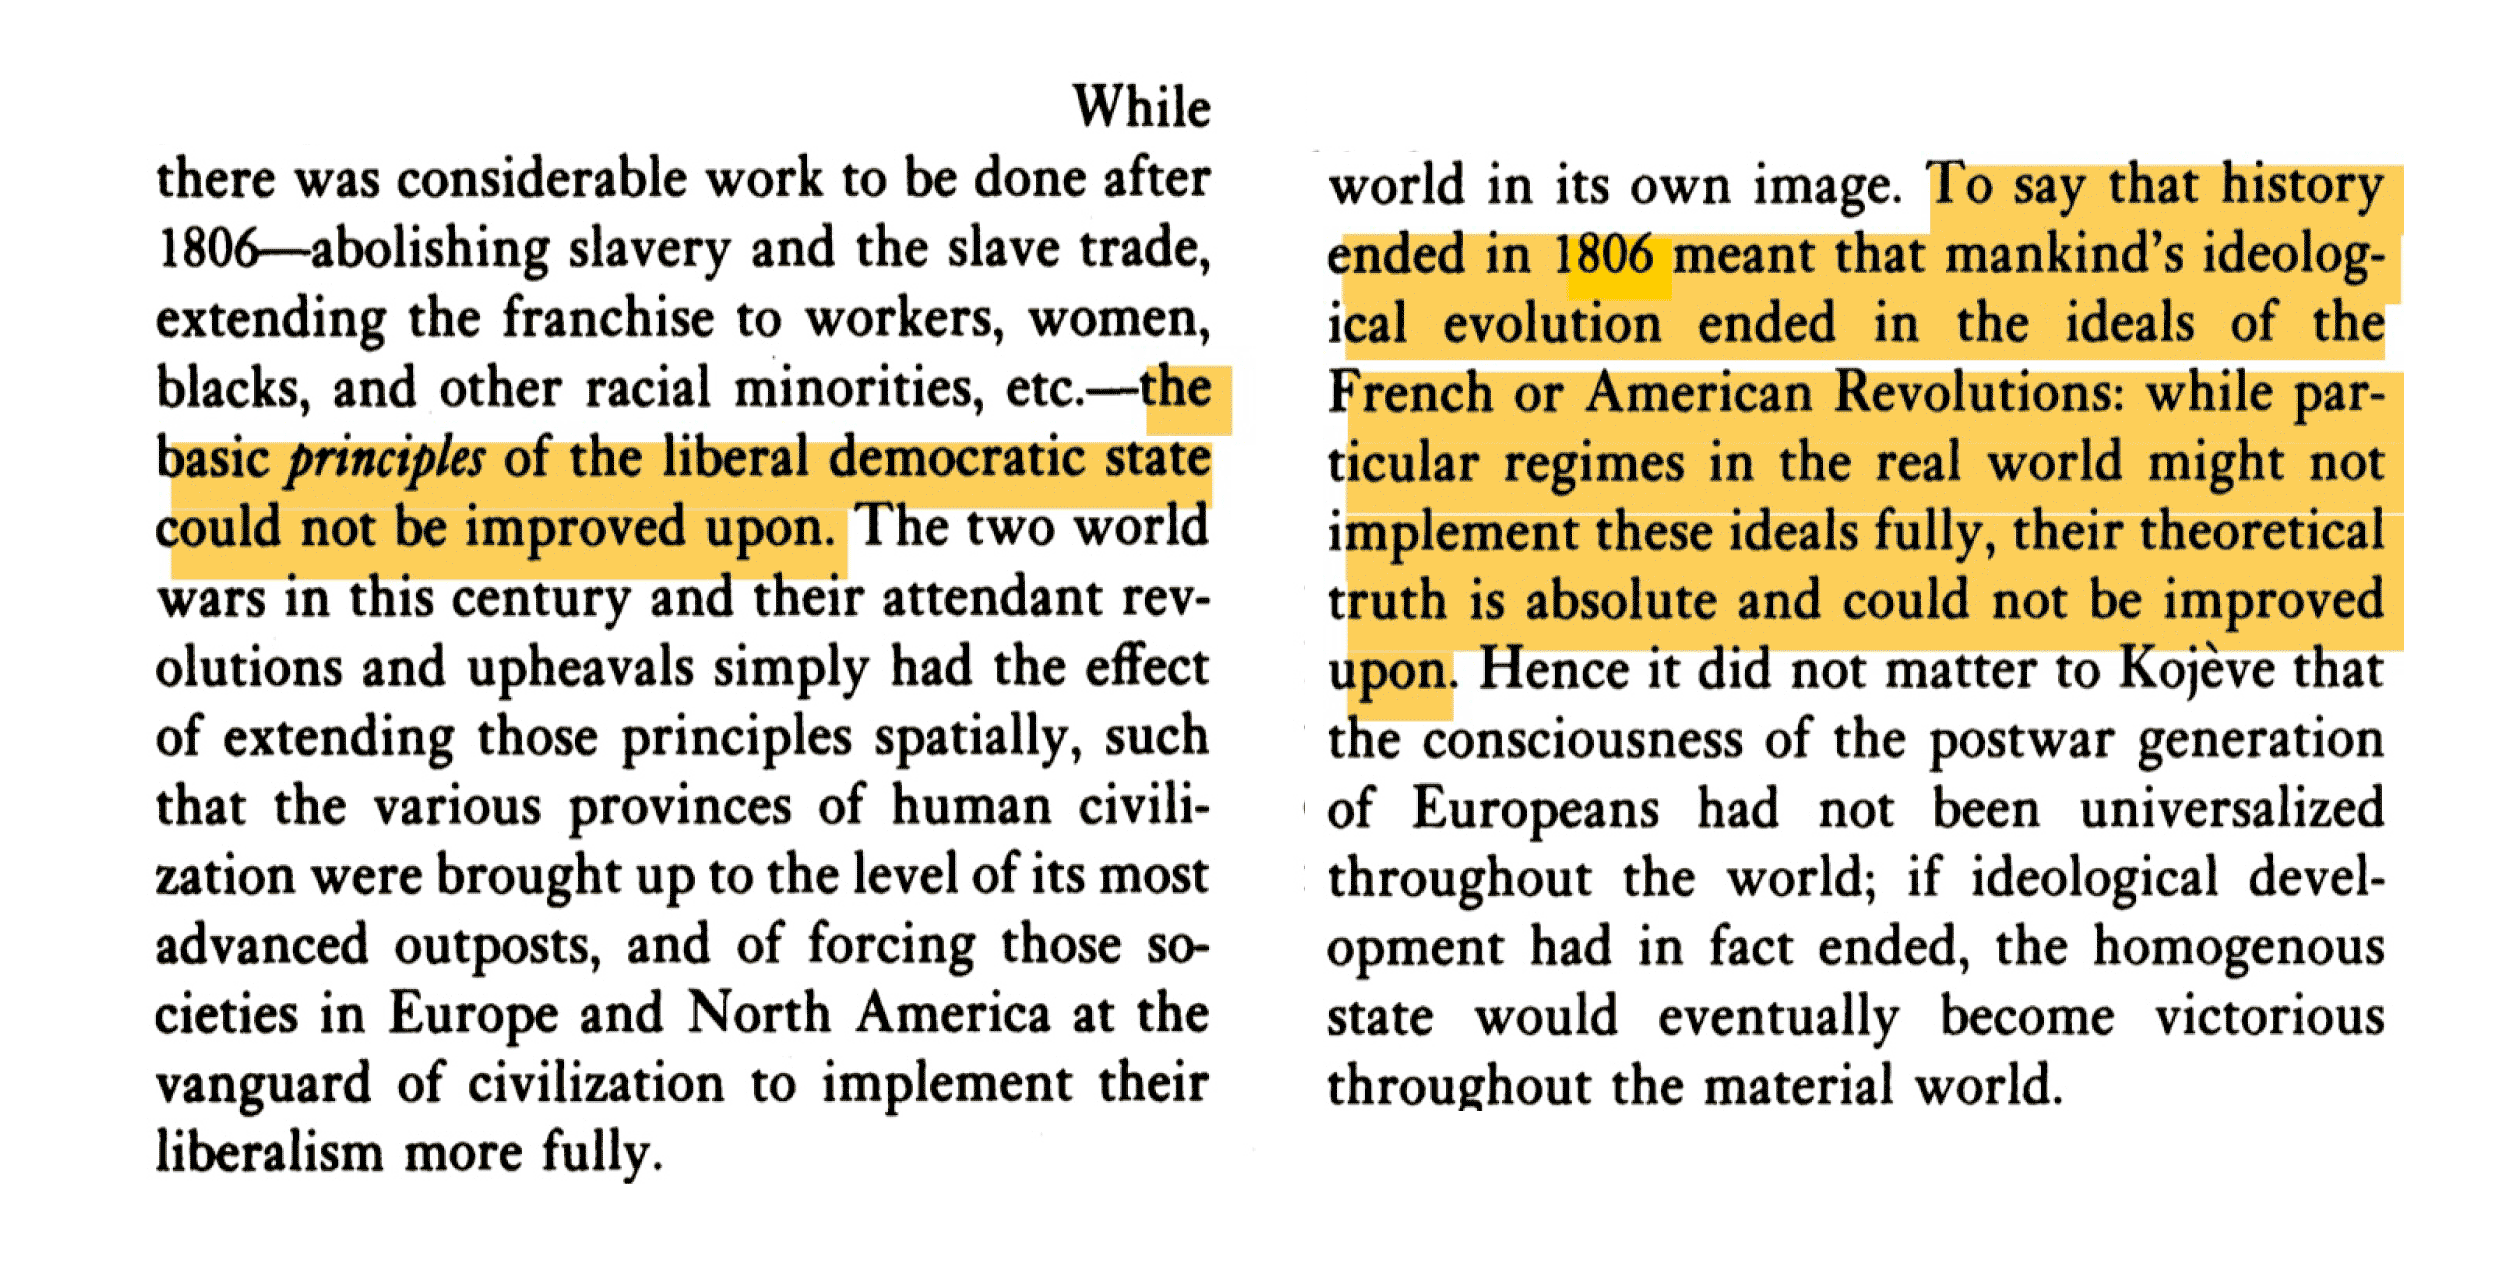 To say that history ended in 1806 meant that mankind's ideological evolution ended in the ideals of the French or American Revolutions: while particular regimes in the real world might not implement these ideals fully, their theoretical truth is absolute and could not be improved upon.